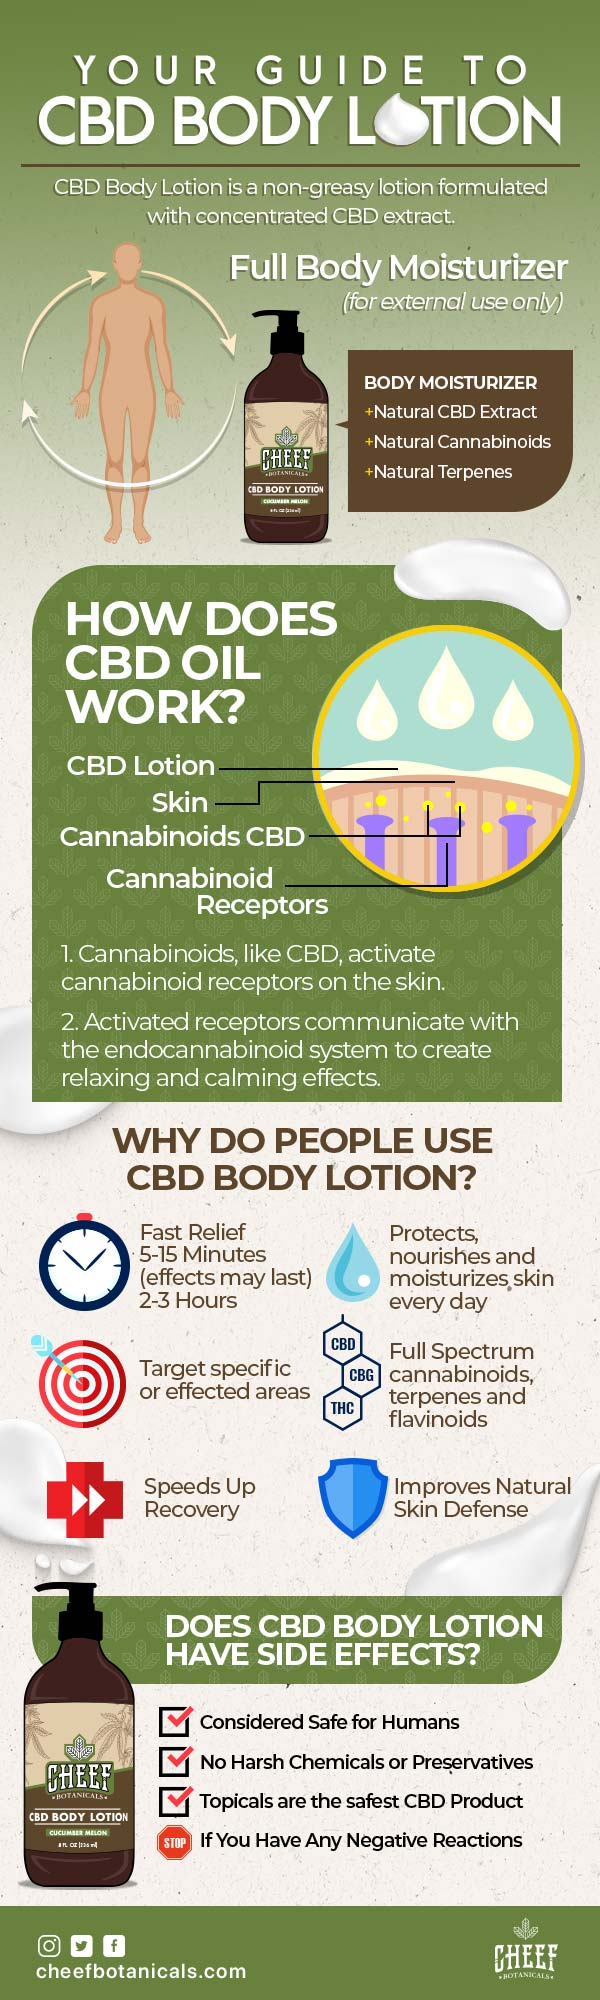 This infographic describes how and why people use CBD body lotion